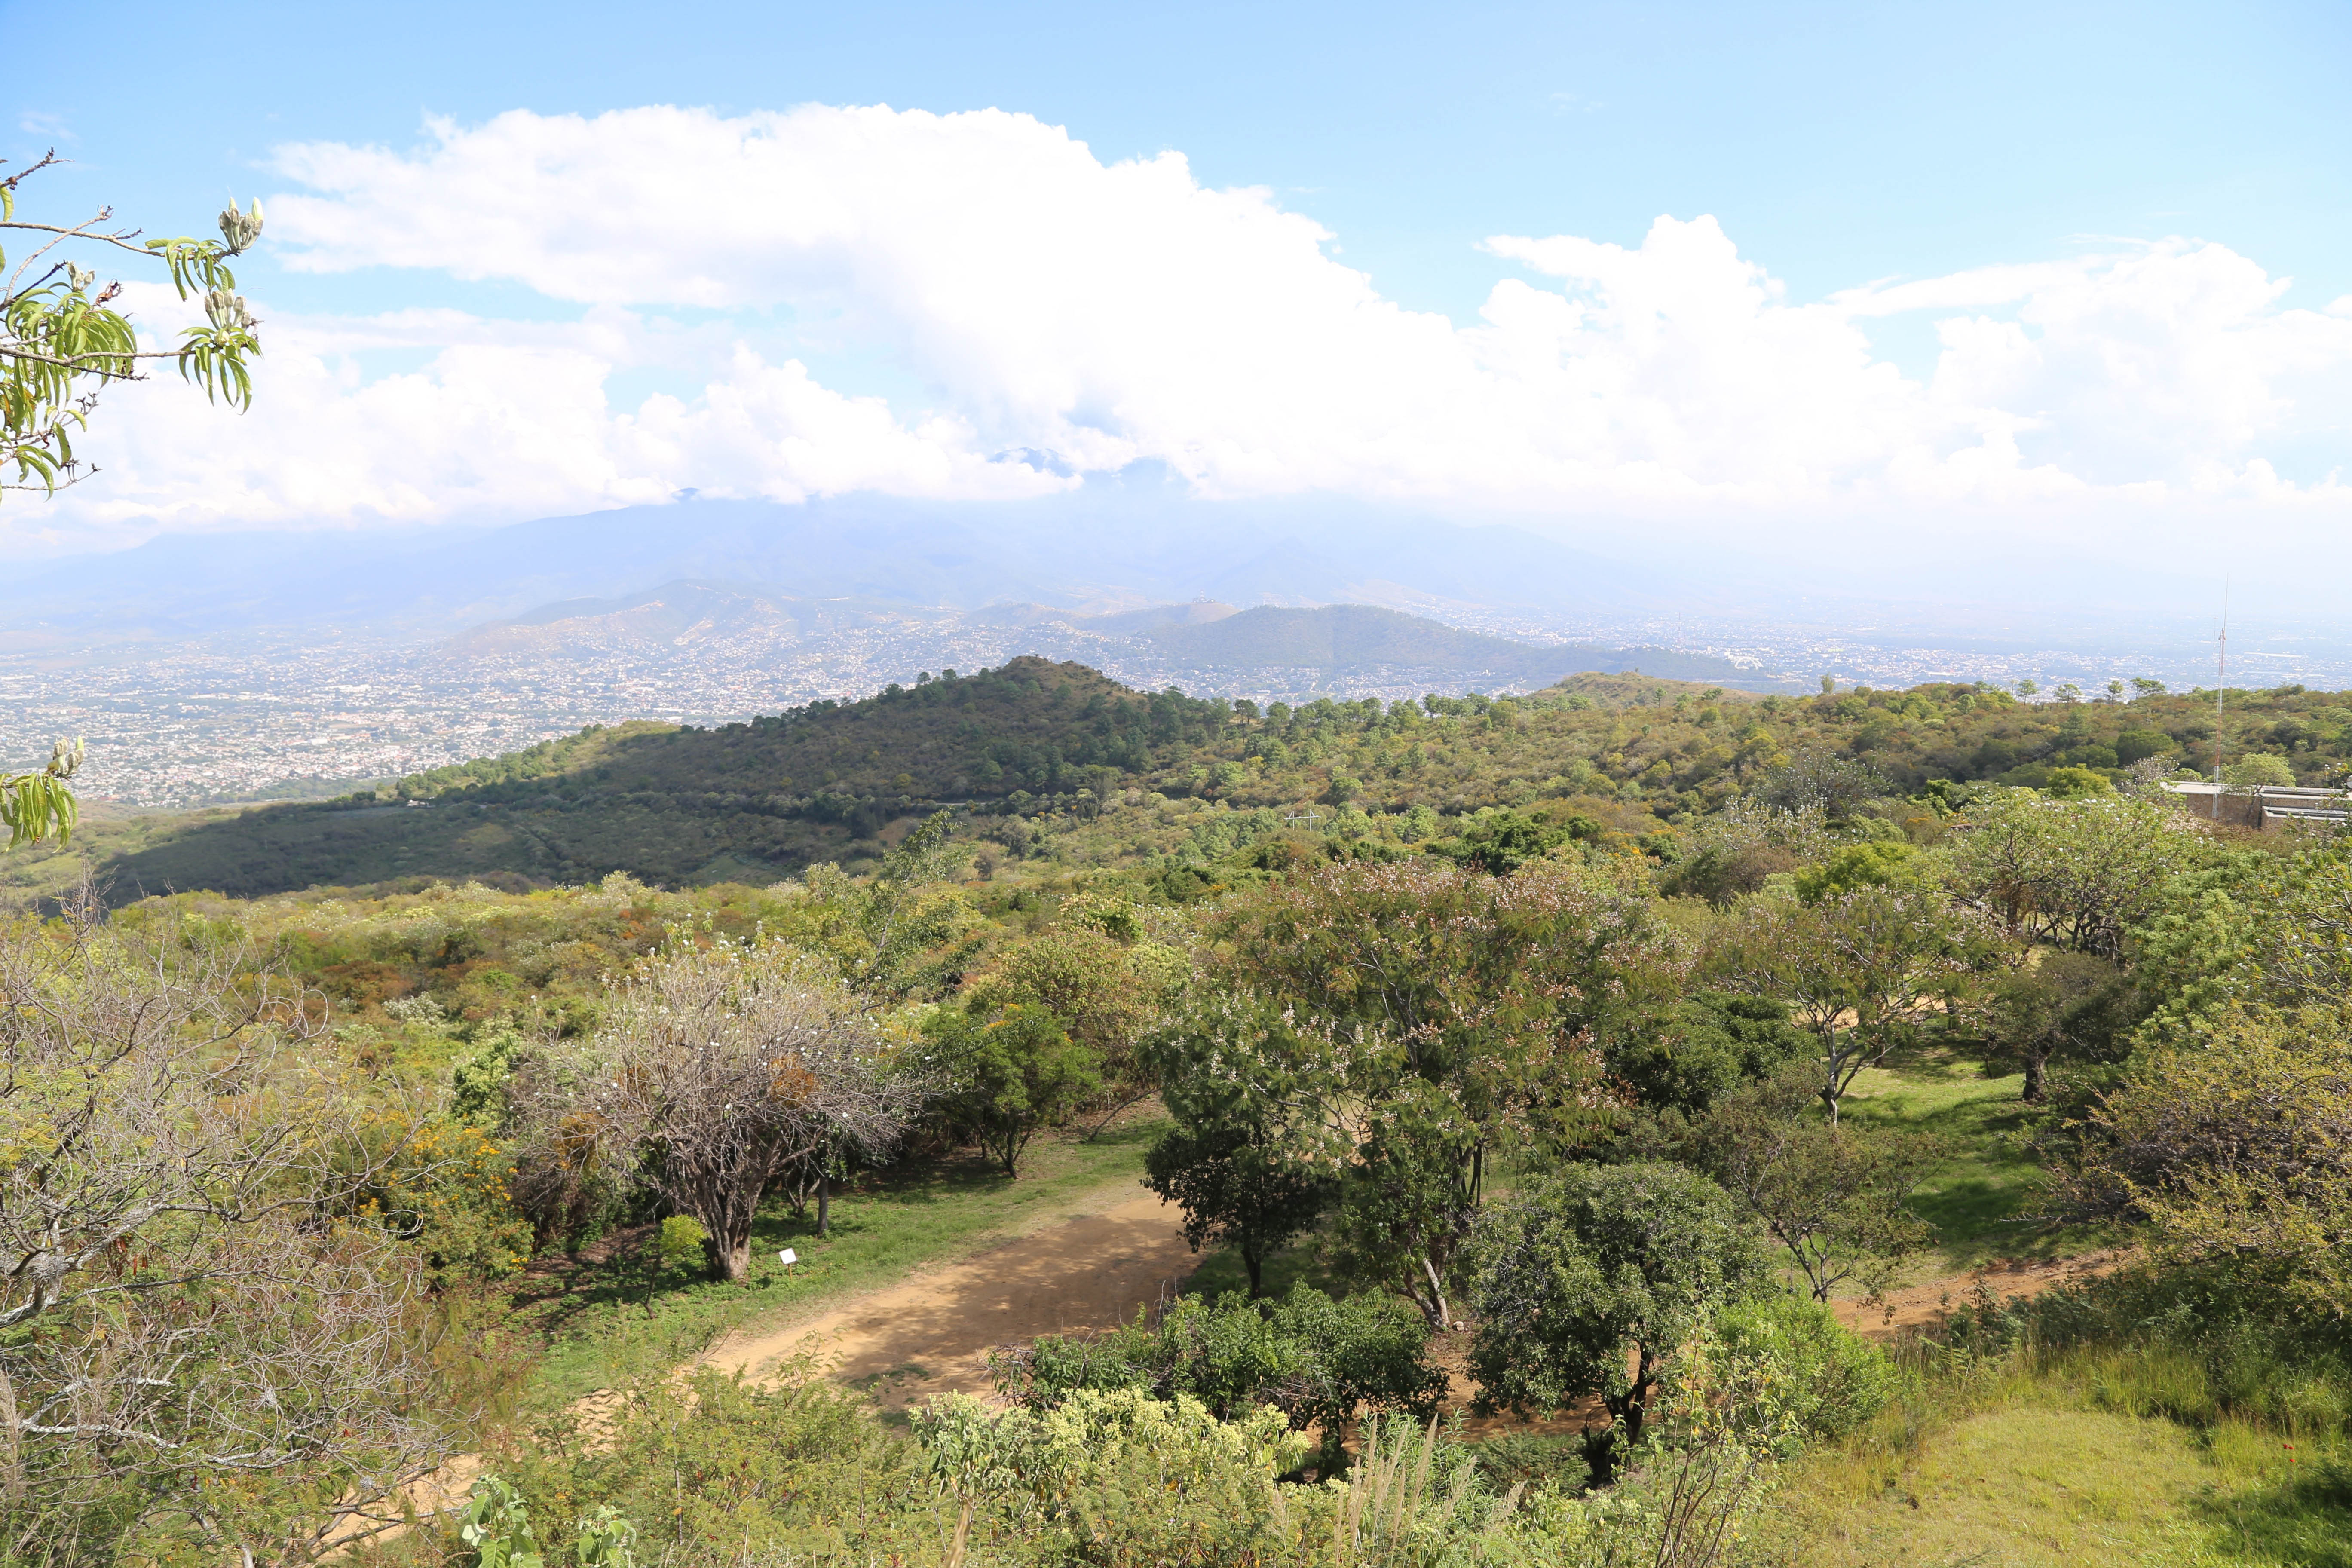 The valley below is where the modern-day city of Oaxaca is located. Monte Alban had no year-round water supply.